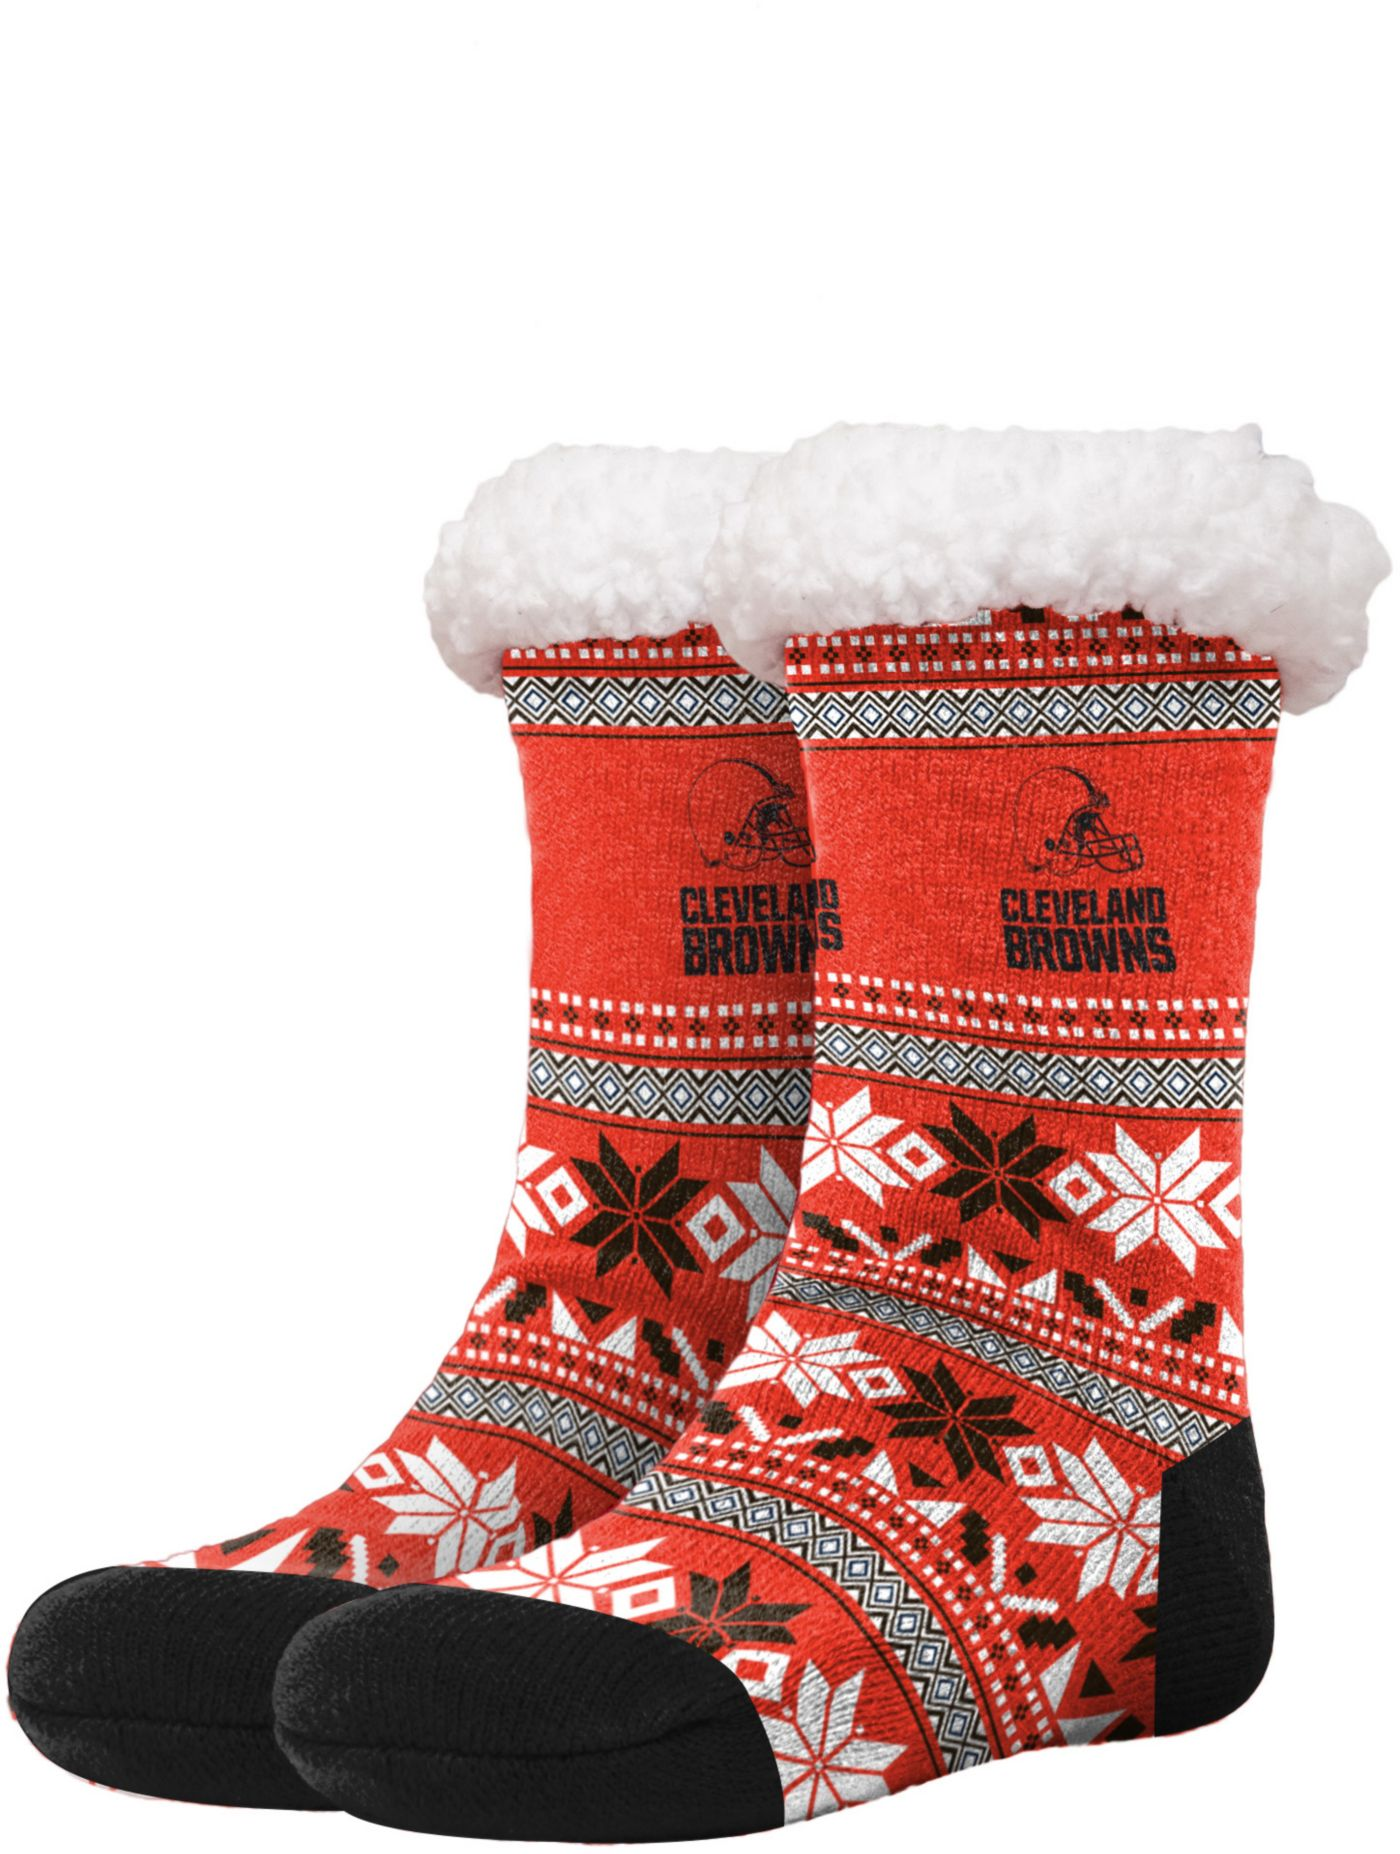 FOCO Cleveland Browns Footy Slippers